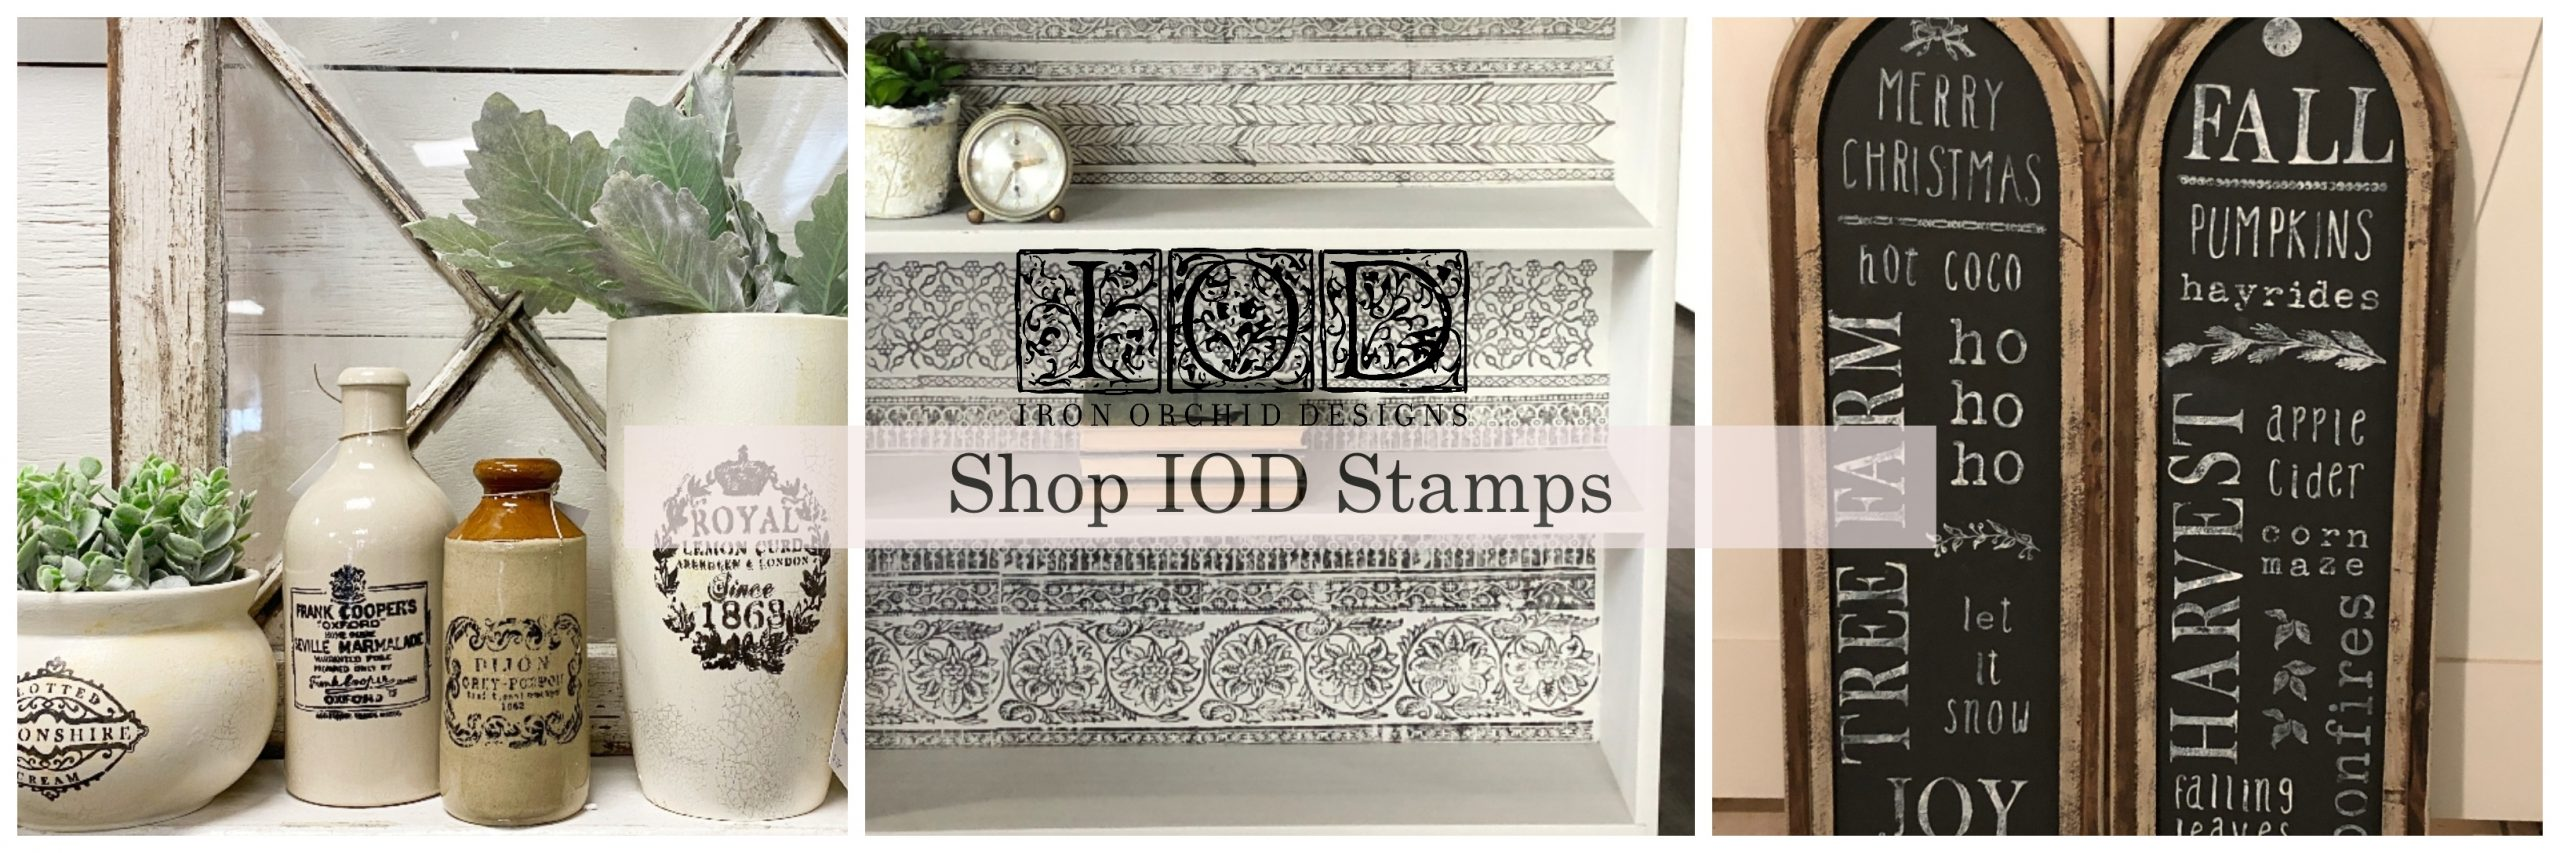 Blue Star at Home Shop IOD Stamps